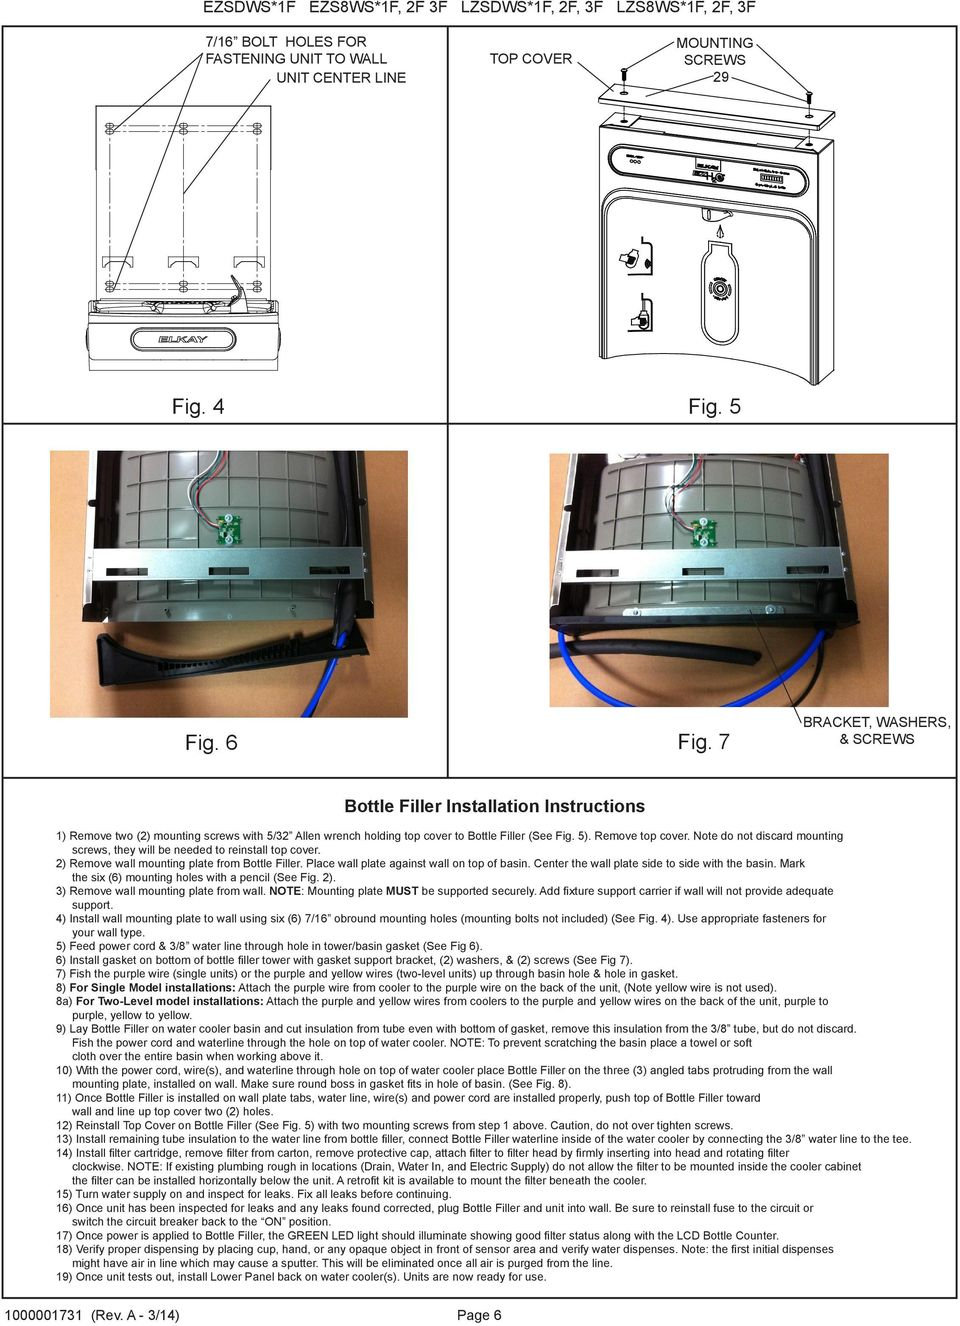 Note do not discard mounting screws, they will be needed to reinstall top cover. ) Remove wall mounting plate from Bottle Filler. Place wall plate against wall on top of basin.